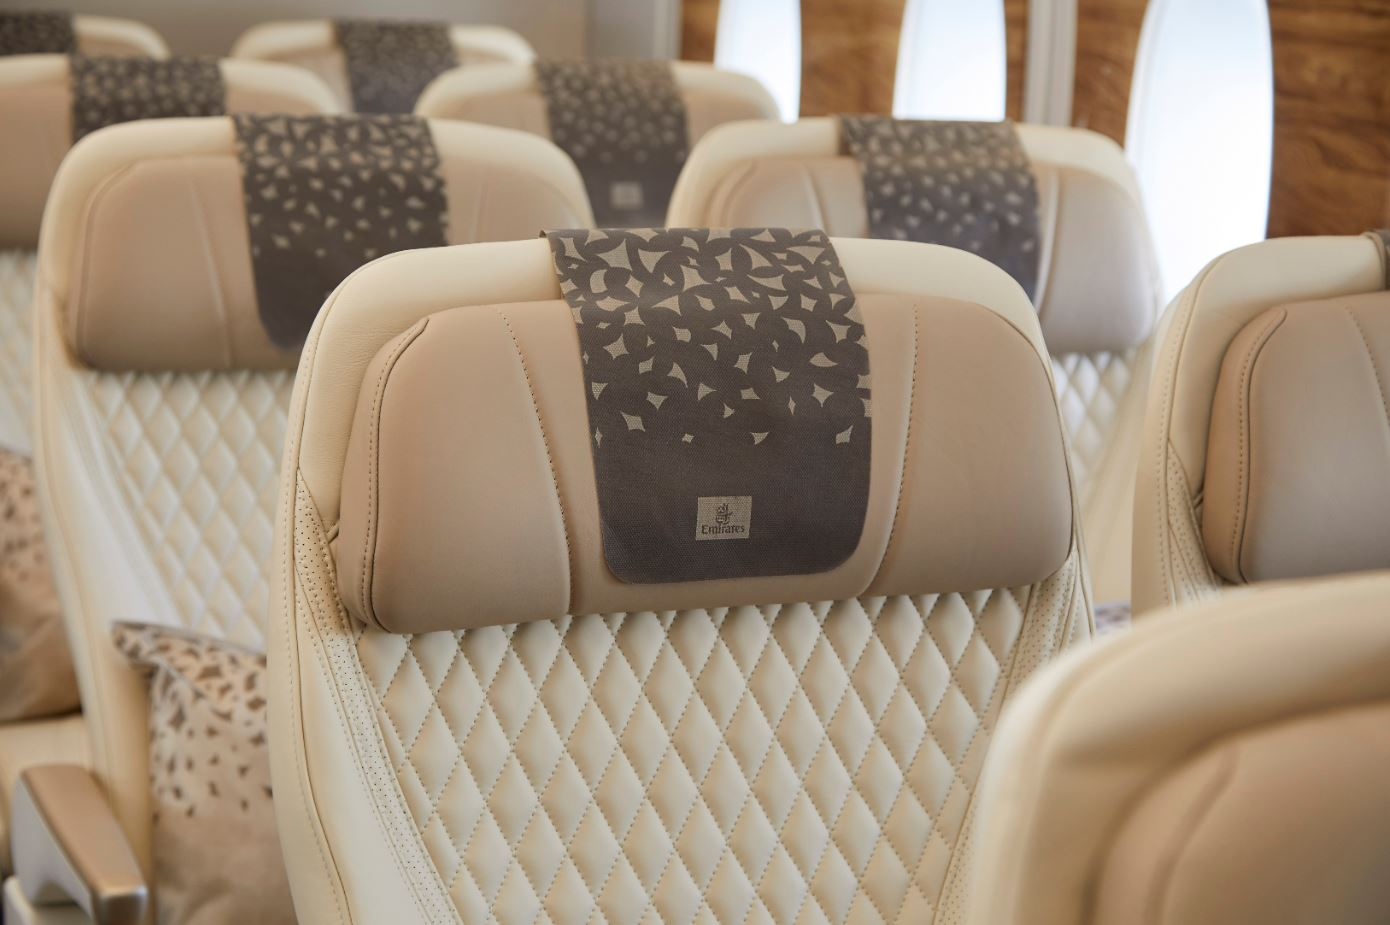 Emirates new premium economy. How Emirates is taking its A380 luxury to new heights